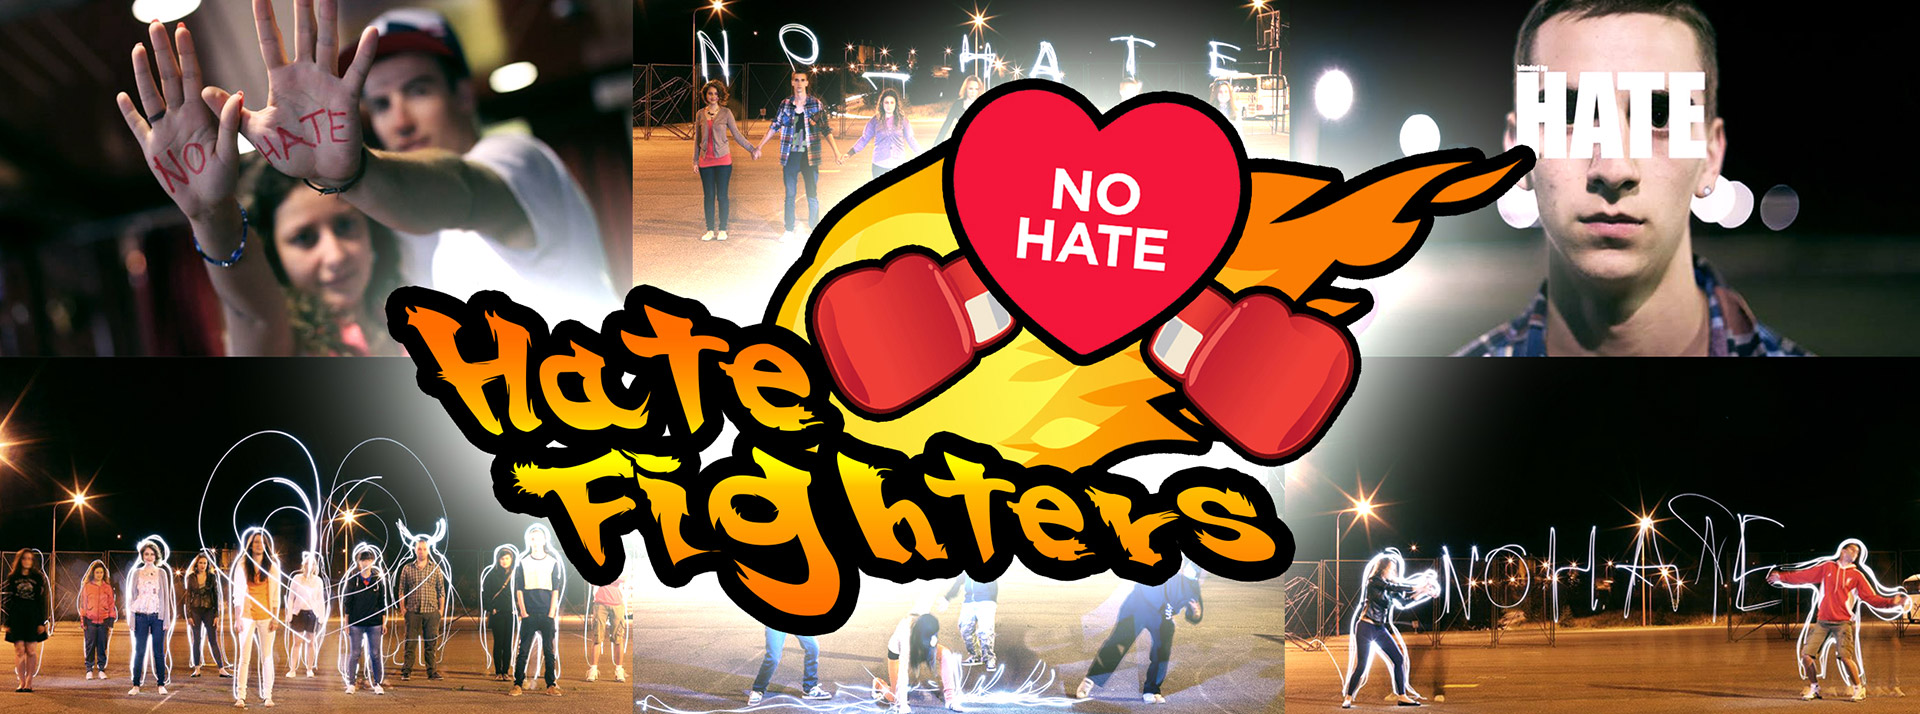 Hate Fighters